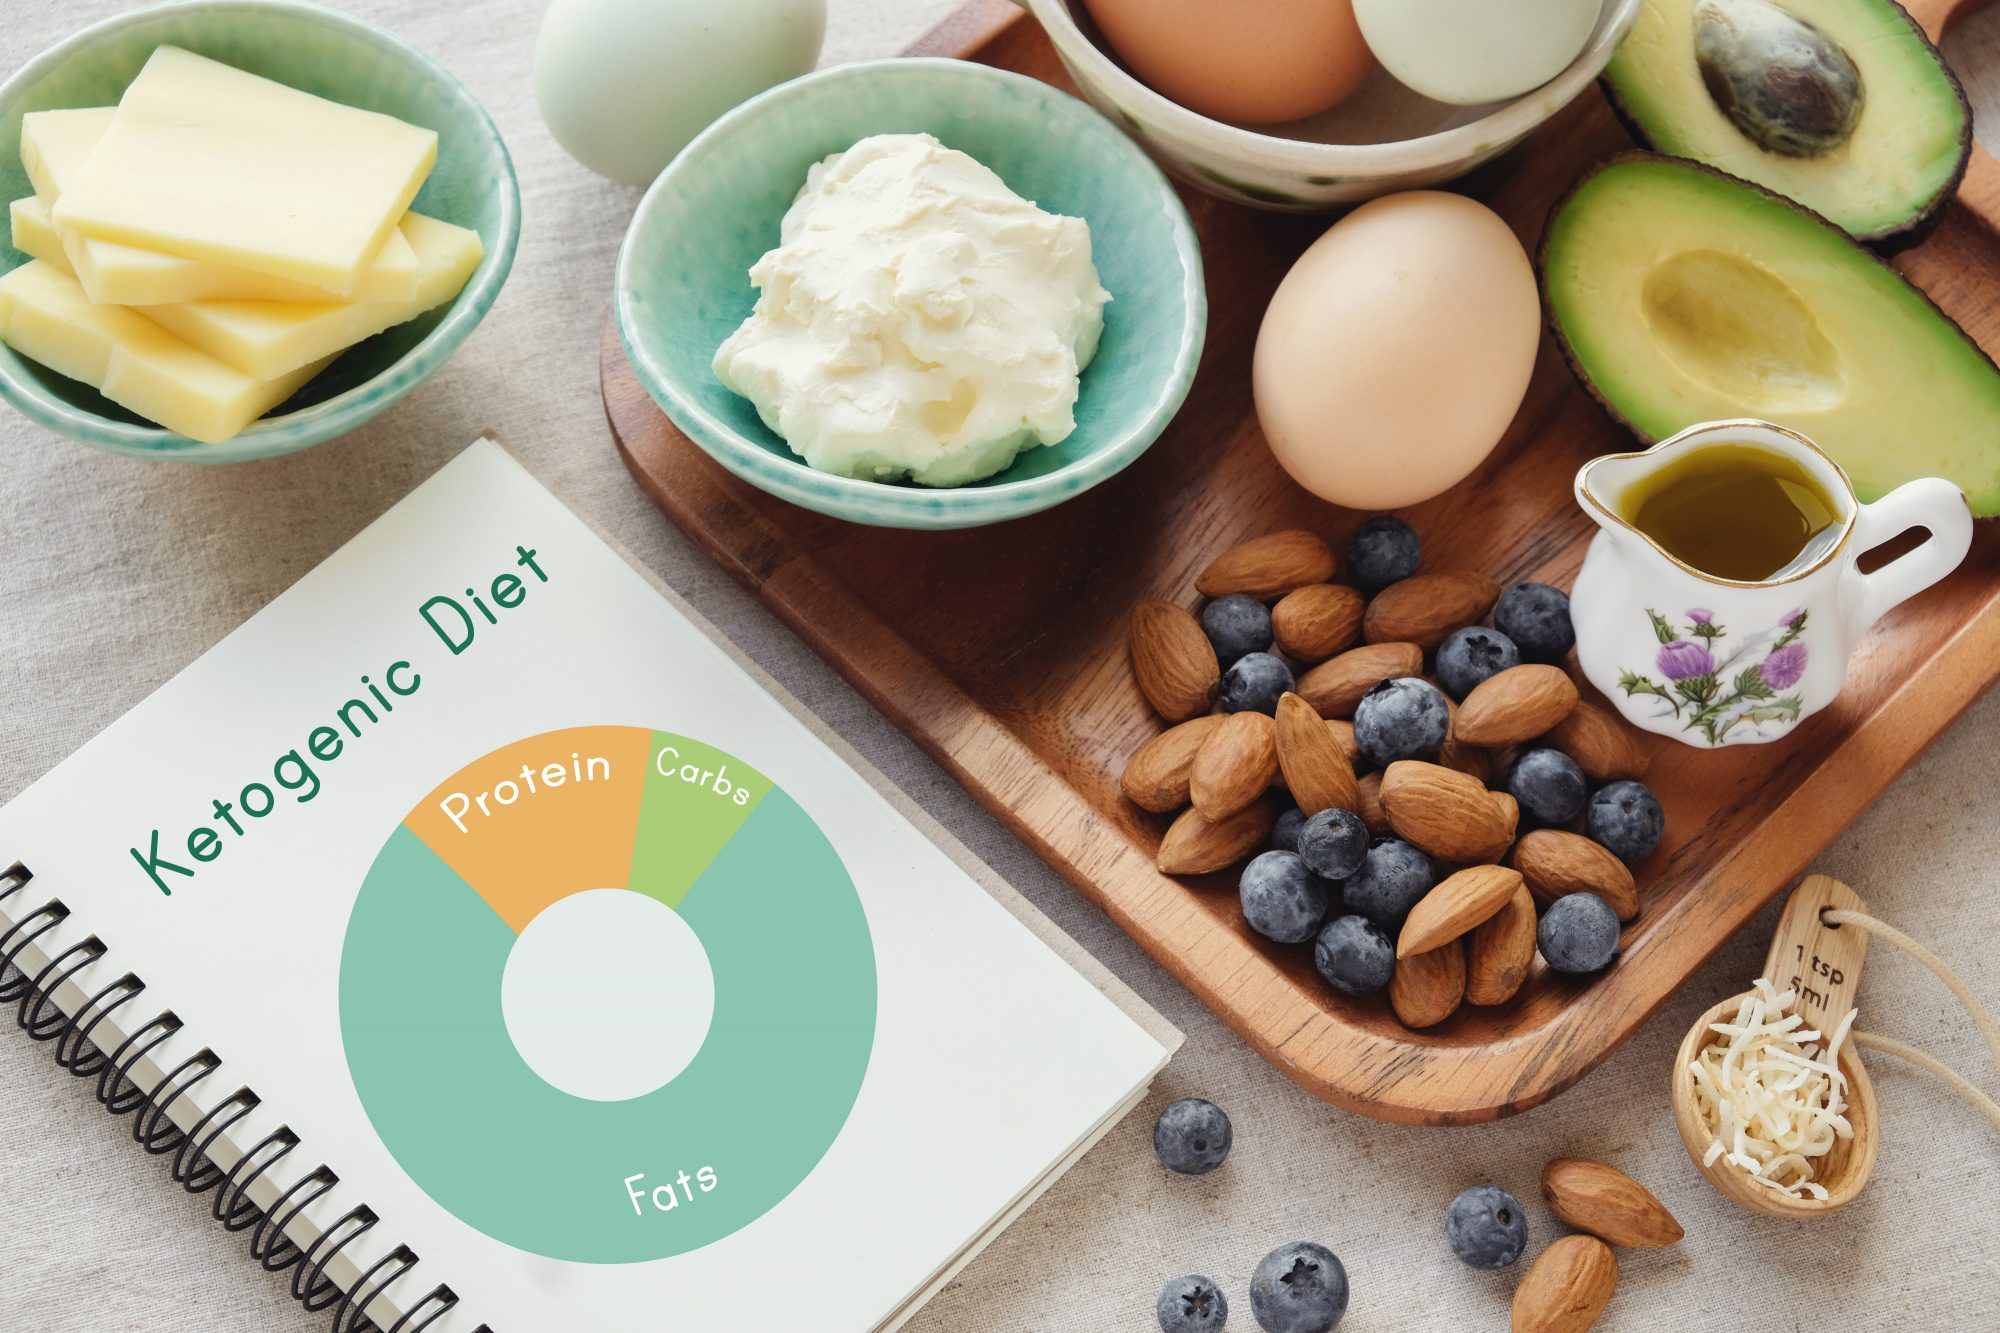 We Tried the Keto Diet for a Day: Here Are 3 Surprising Lessons Learned